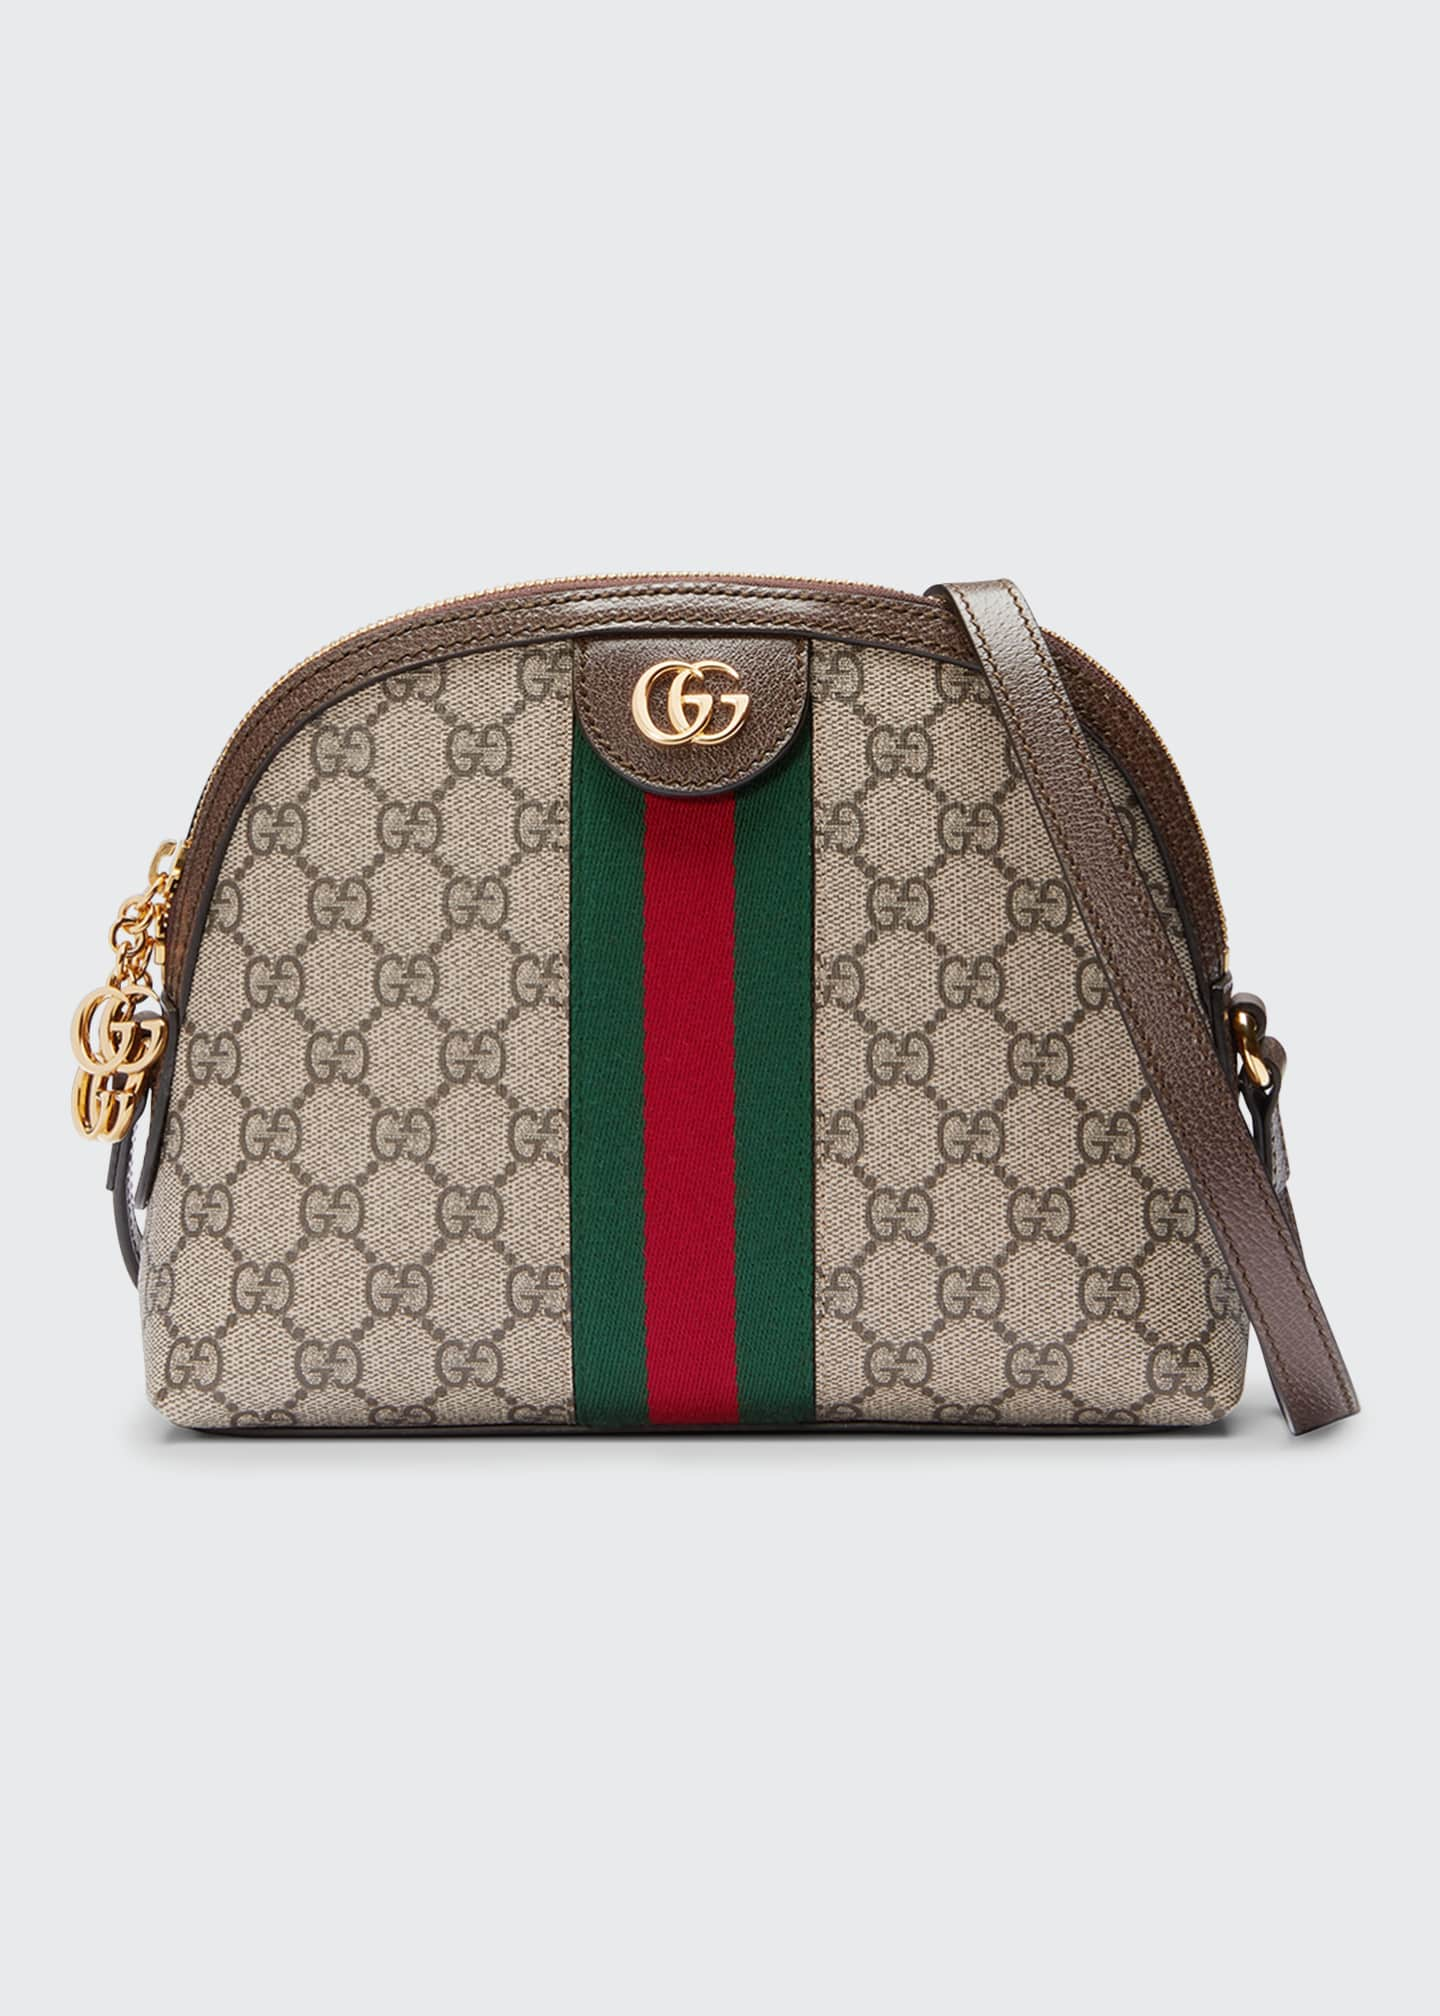 Gucci Linea Dragoni GG Supreme Canvas Small Shoulder